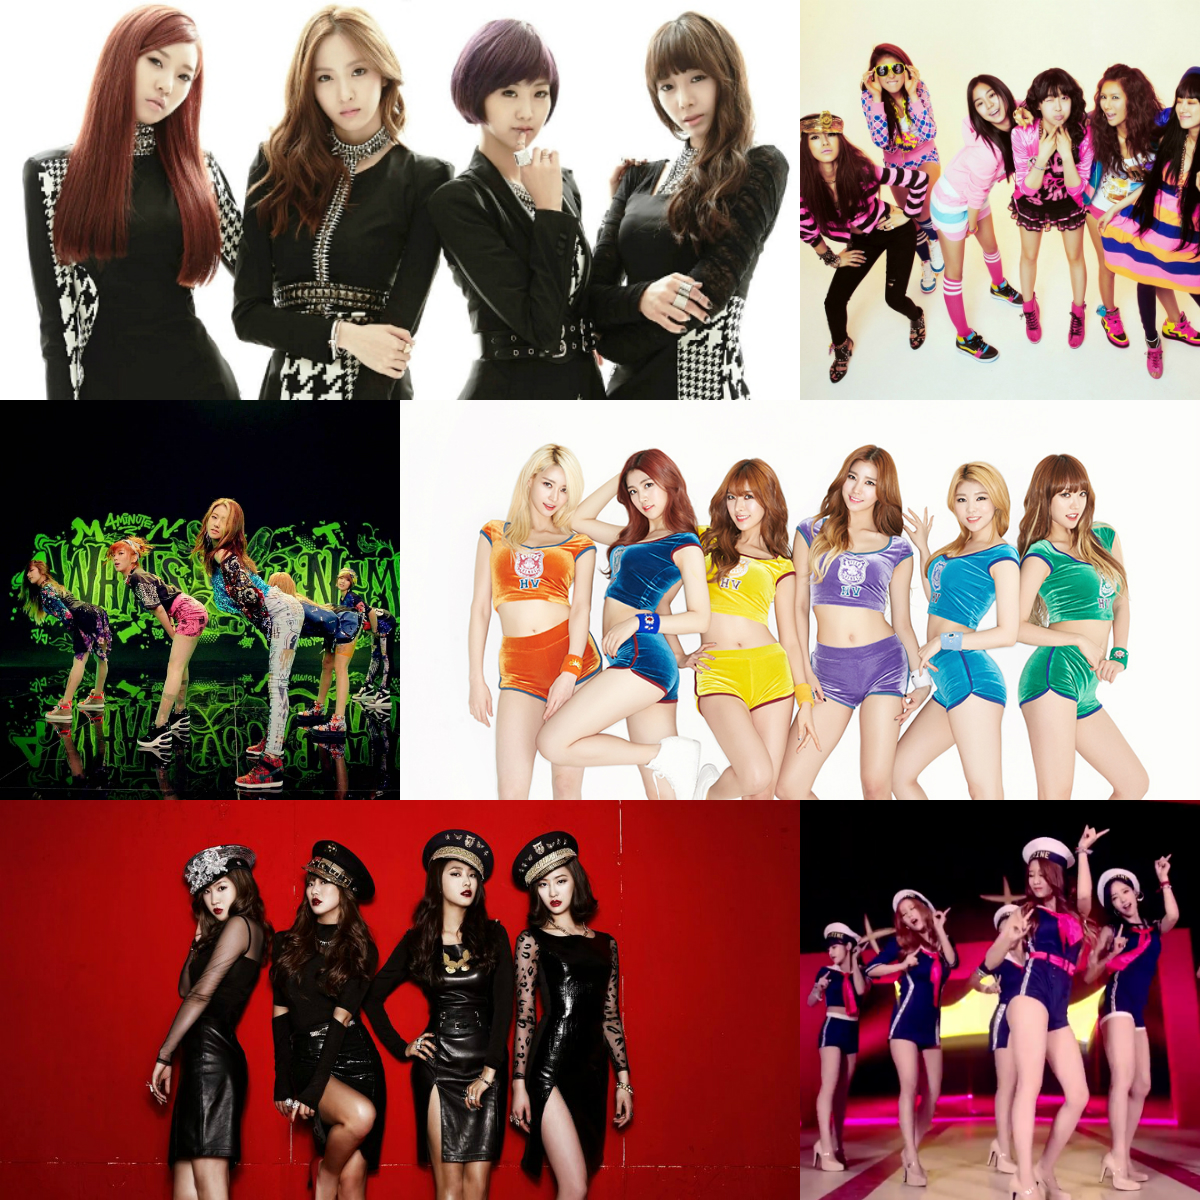 Brave Brothers produced girl groups